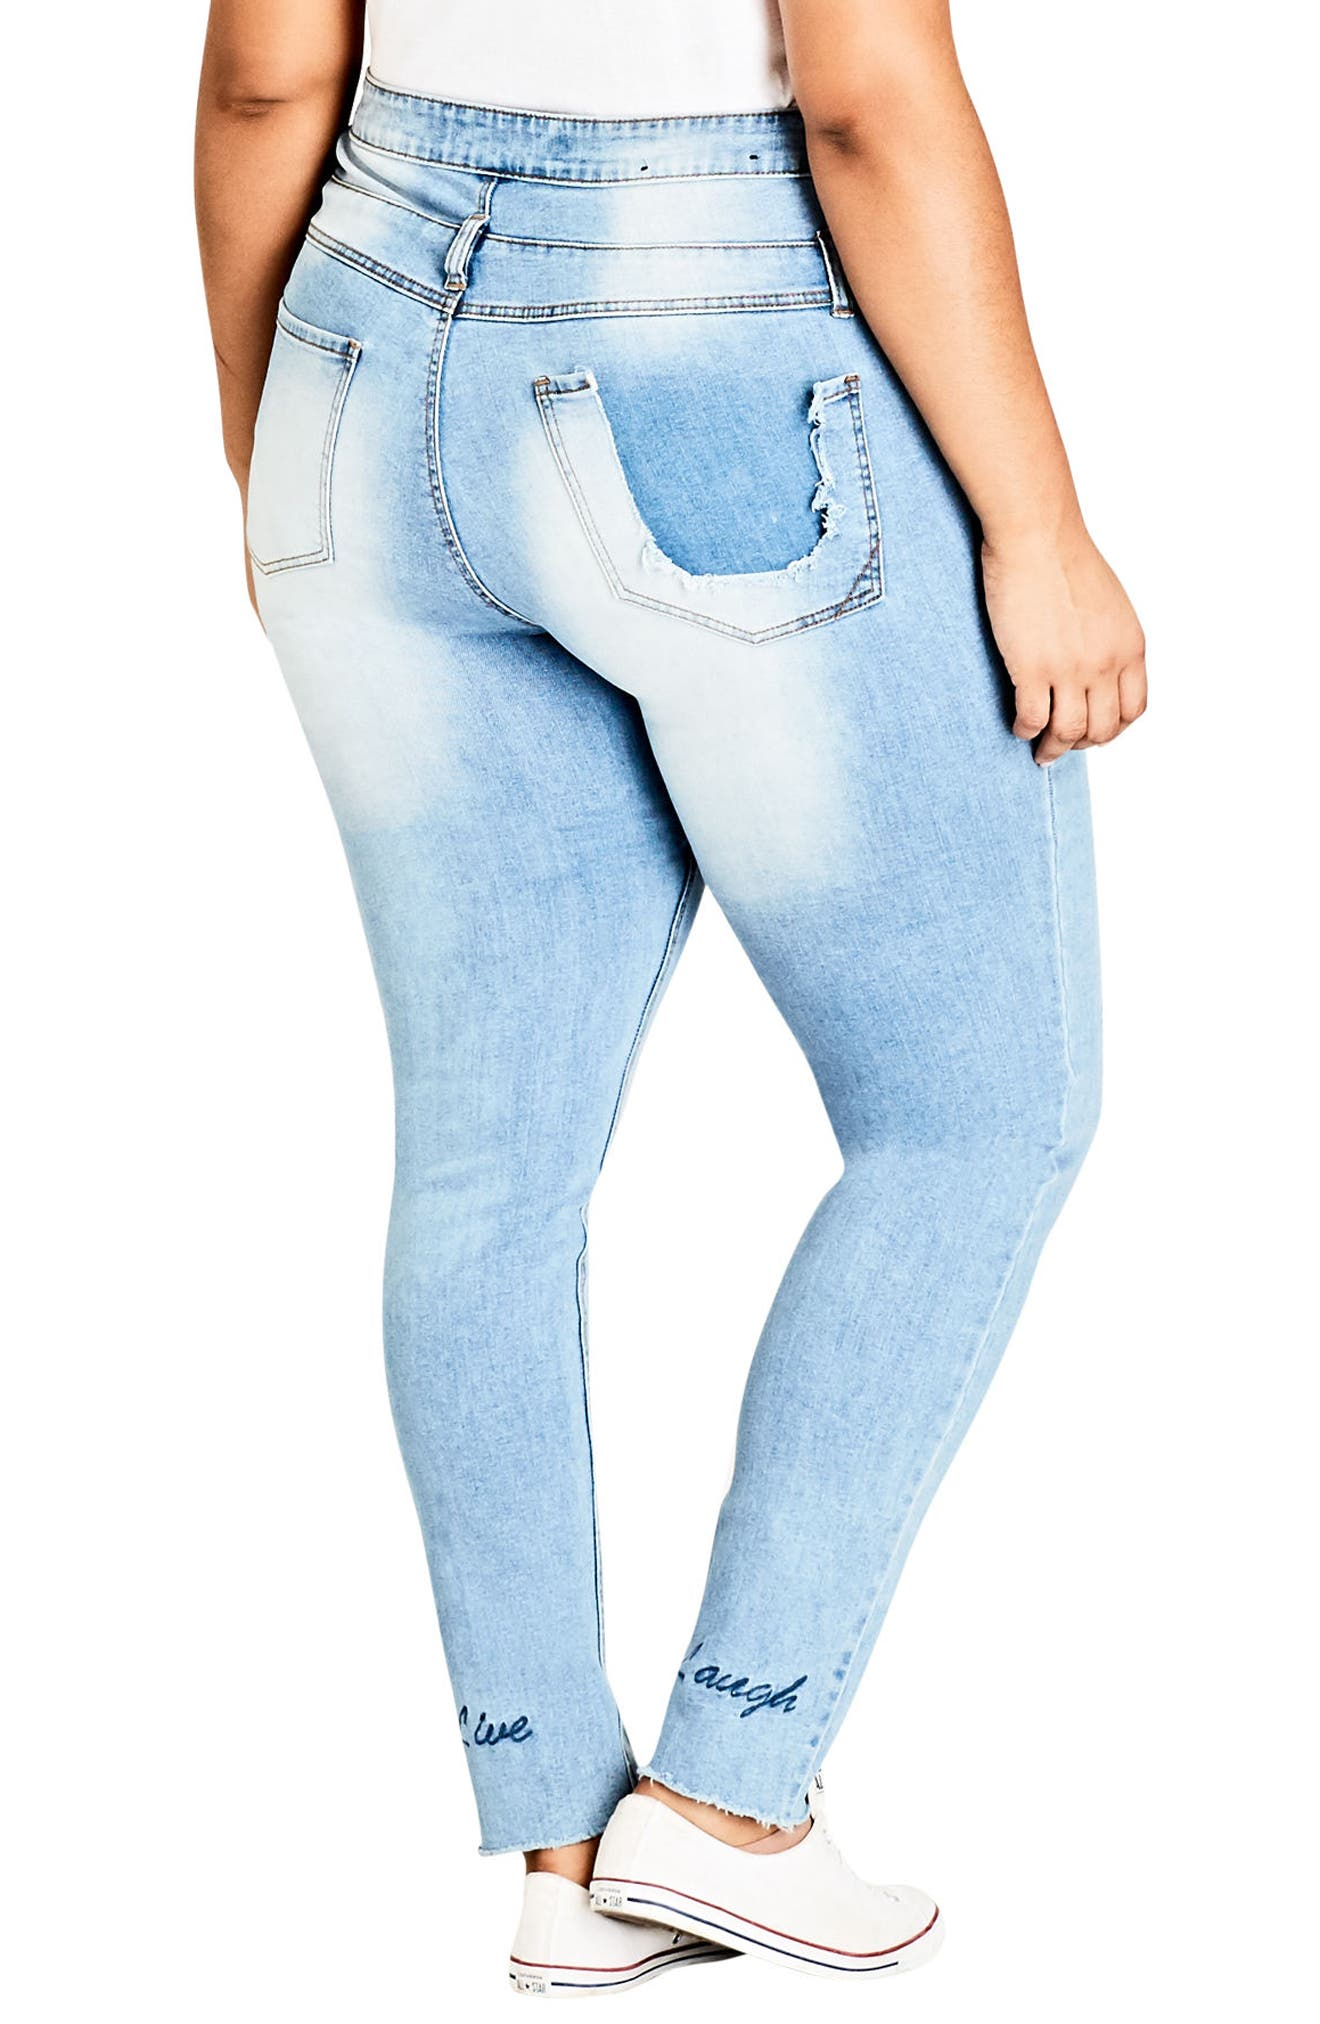 Harley Vibes Ripped Corset Skinny Jeans,                             Alternate thumbnail 2, color,                             410